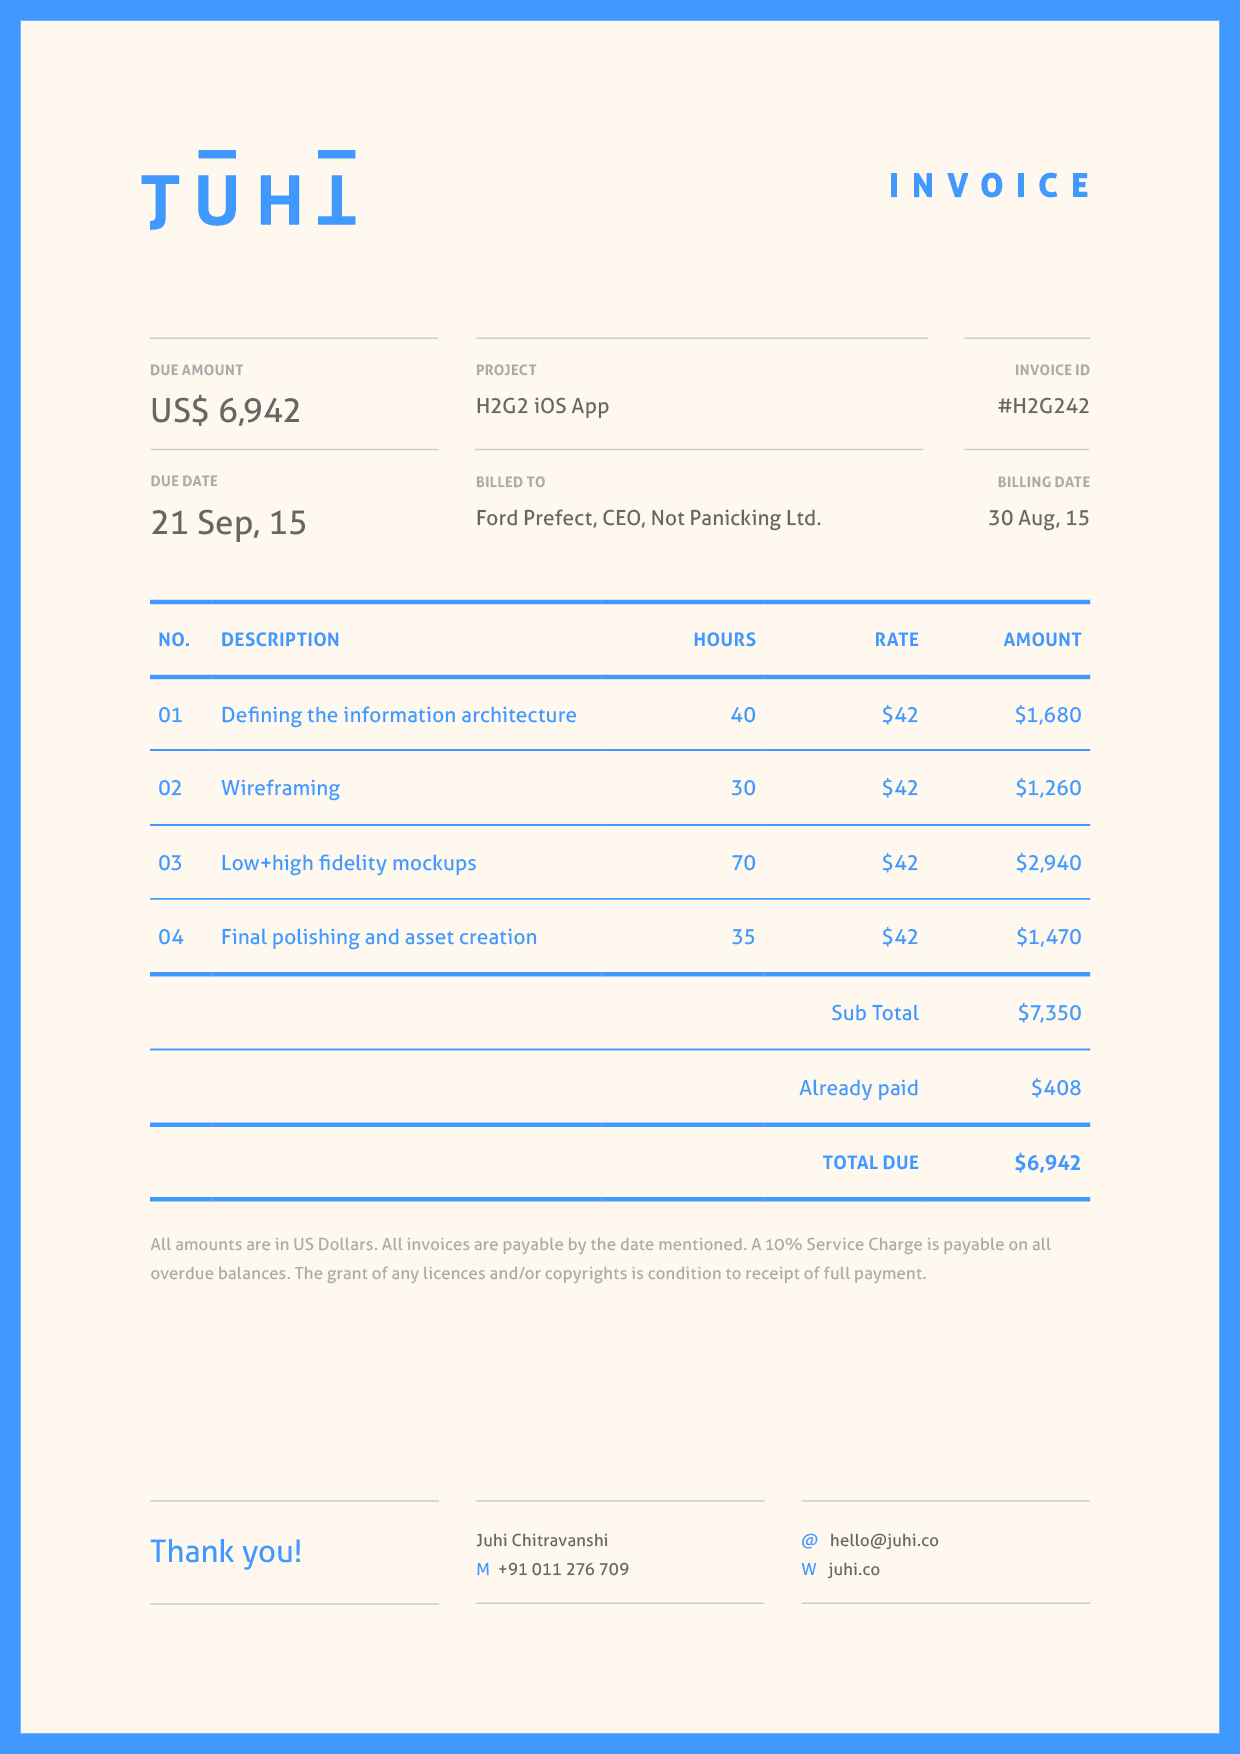 Pigbrotherus  Winsome Dont Hold Back On Your Invoice  Inspiring Designs  With Remarkable Invoice By Juhi Chitravanshi Follow With Enchanting Invoice Prices Of New Cars Also Commercial Invoice Excel Template In Addition Lawyer Invoice And Invoice Cover Letter Sample As Well As Create Invoice For Free Additionally Free Service Invoice Template Download From Inspirationfeedcom With Pigbrotherus  Remarkable Dont Hold Back On Your Invoice  Inspiring Designs  With Enchanting Invoice By Juhi Chitravanshi Follow And Winsome Invoice Prices Of New Cars Also Commercial Invoice Excel Template In Addition Lawyer Invoice From Inspirationfeedcom